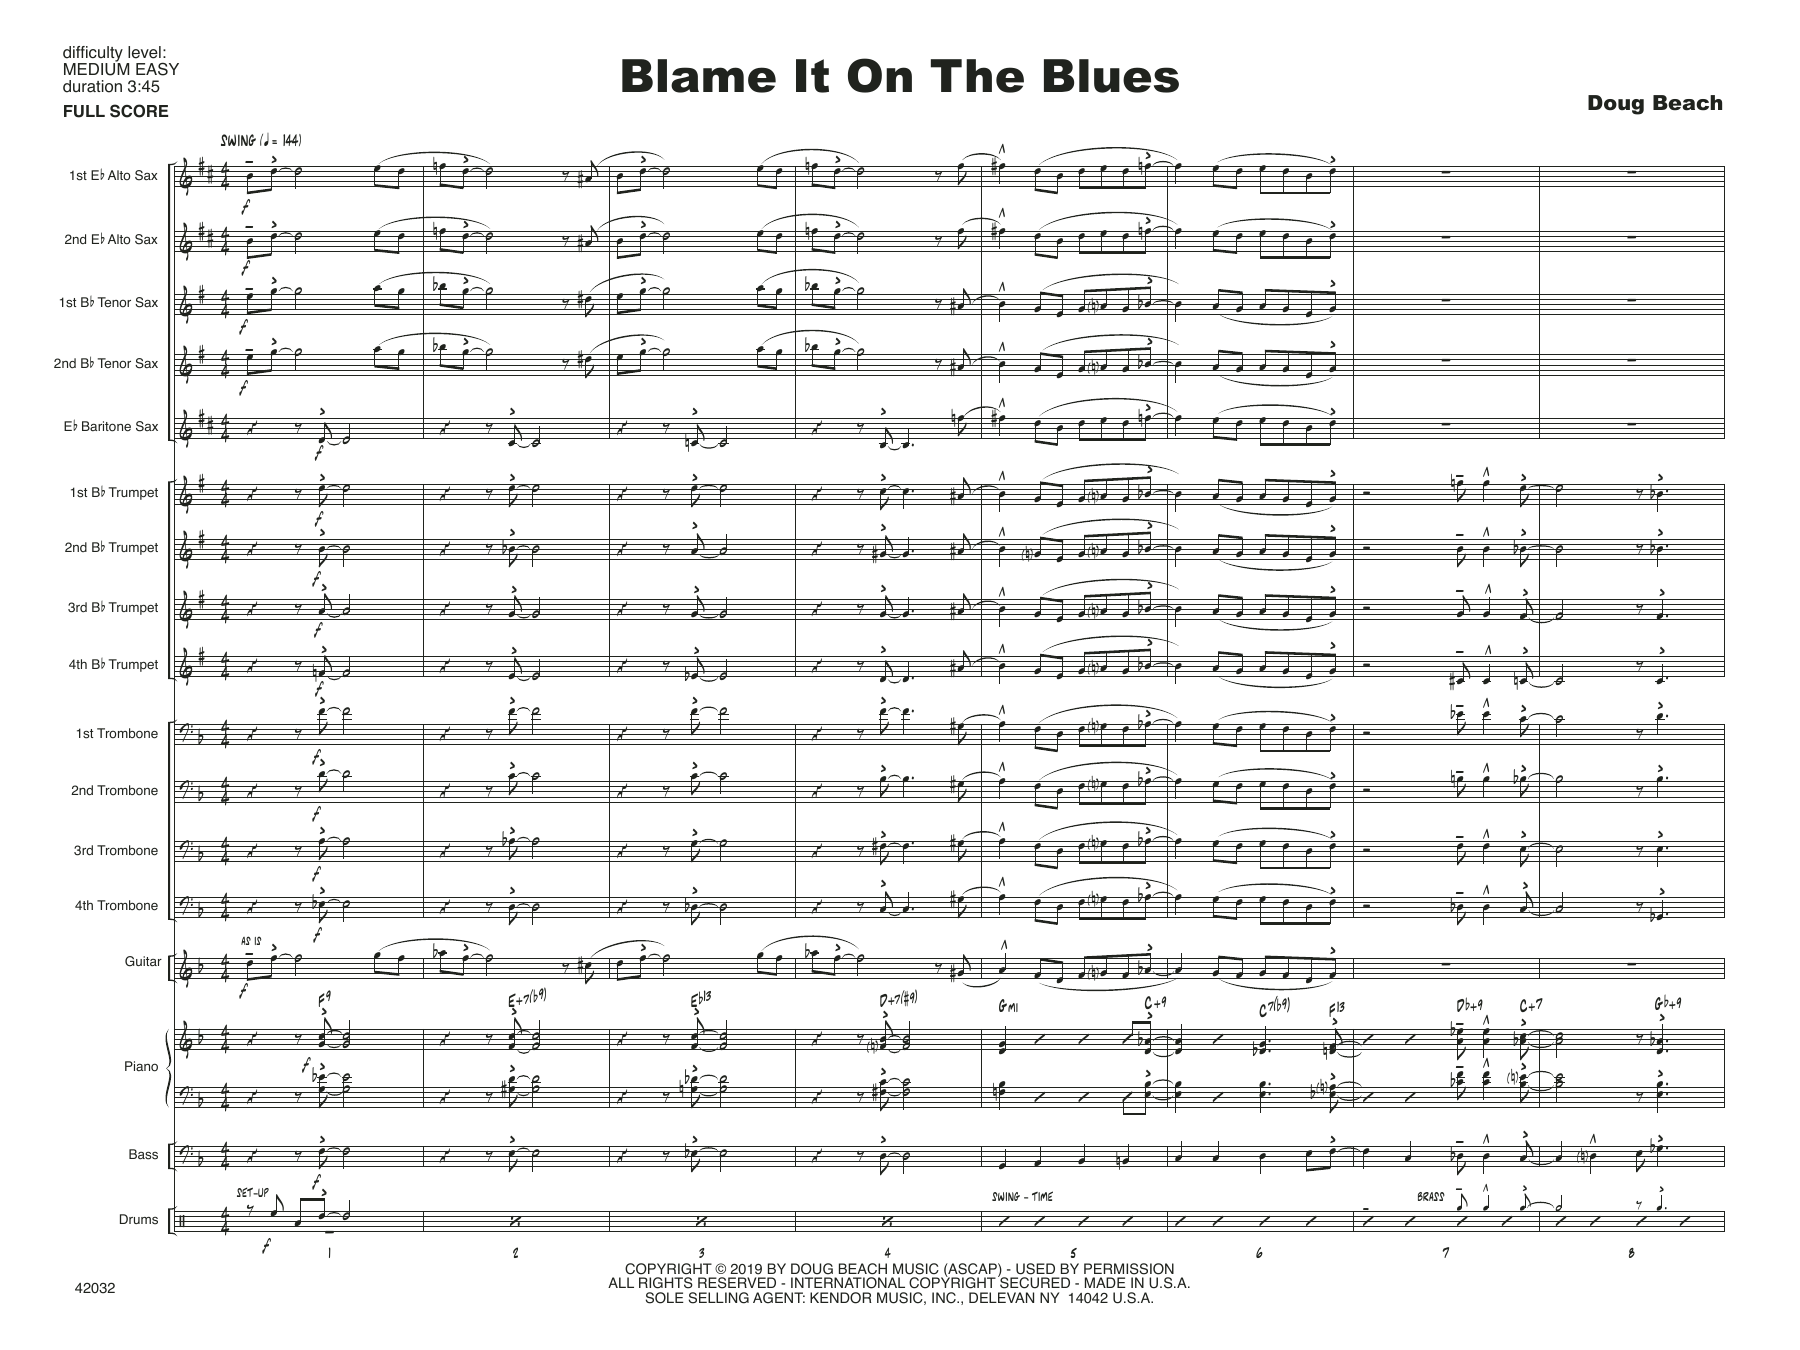 Doug Beach Blame It On The Blues - Full Score sheet music notes and chords. Download Printable PDF.